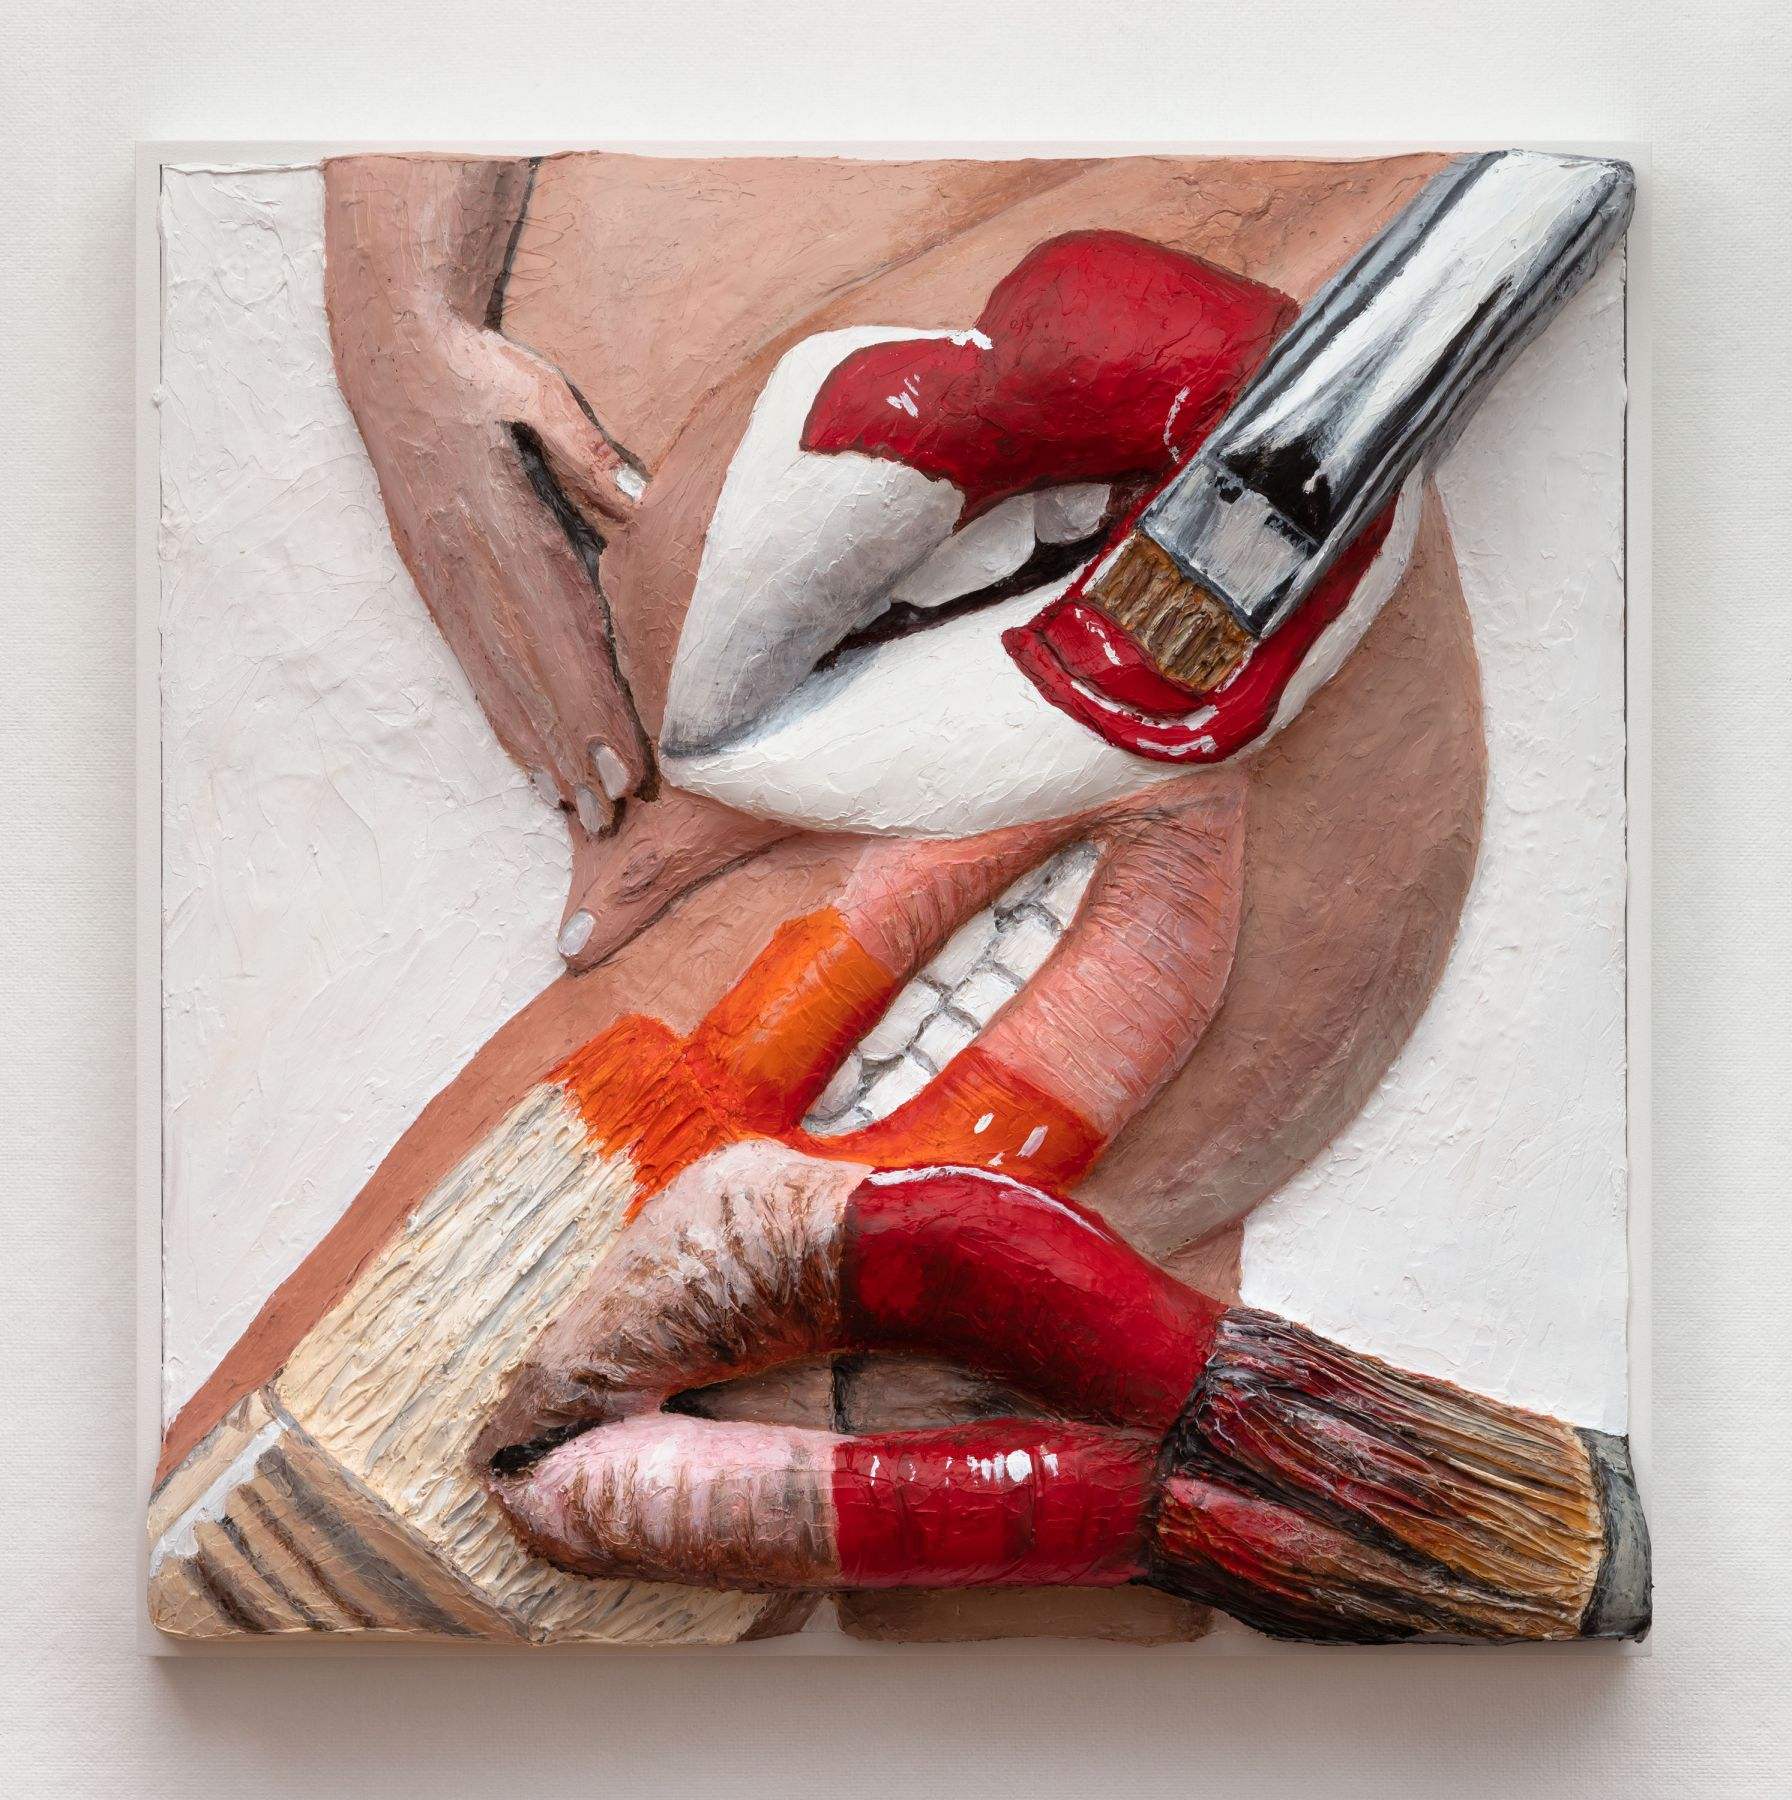 Extruded painting of paint brushes on a body with many lips by Gina Beavers